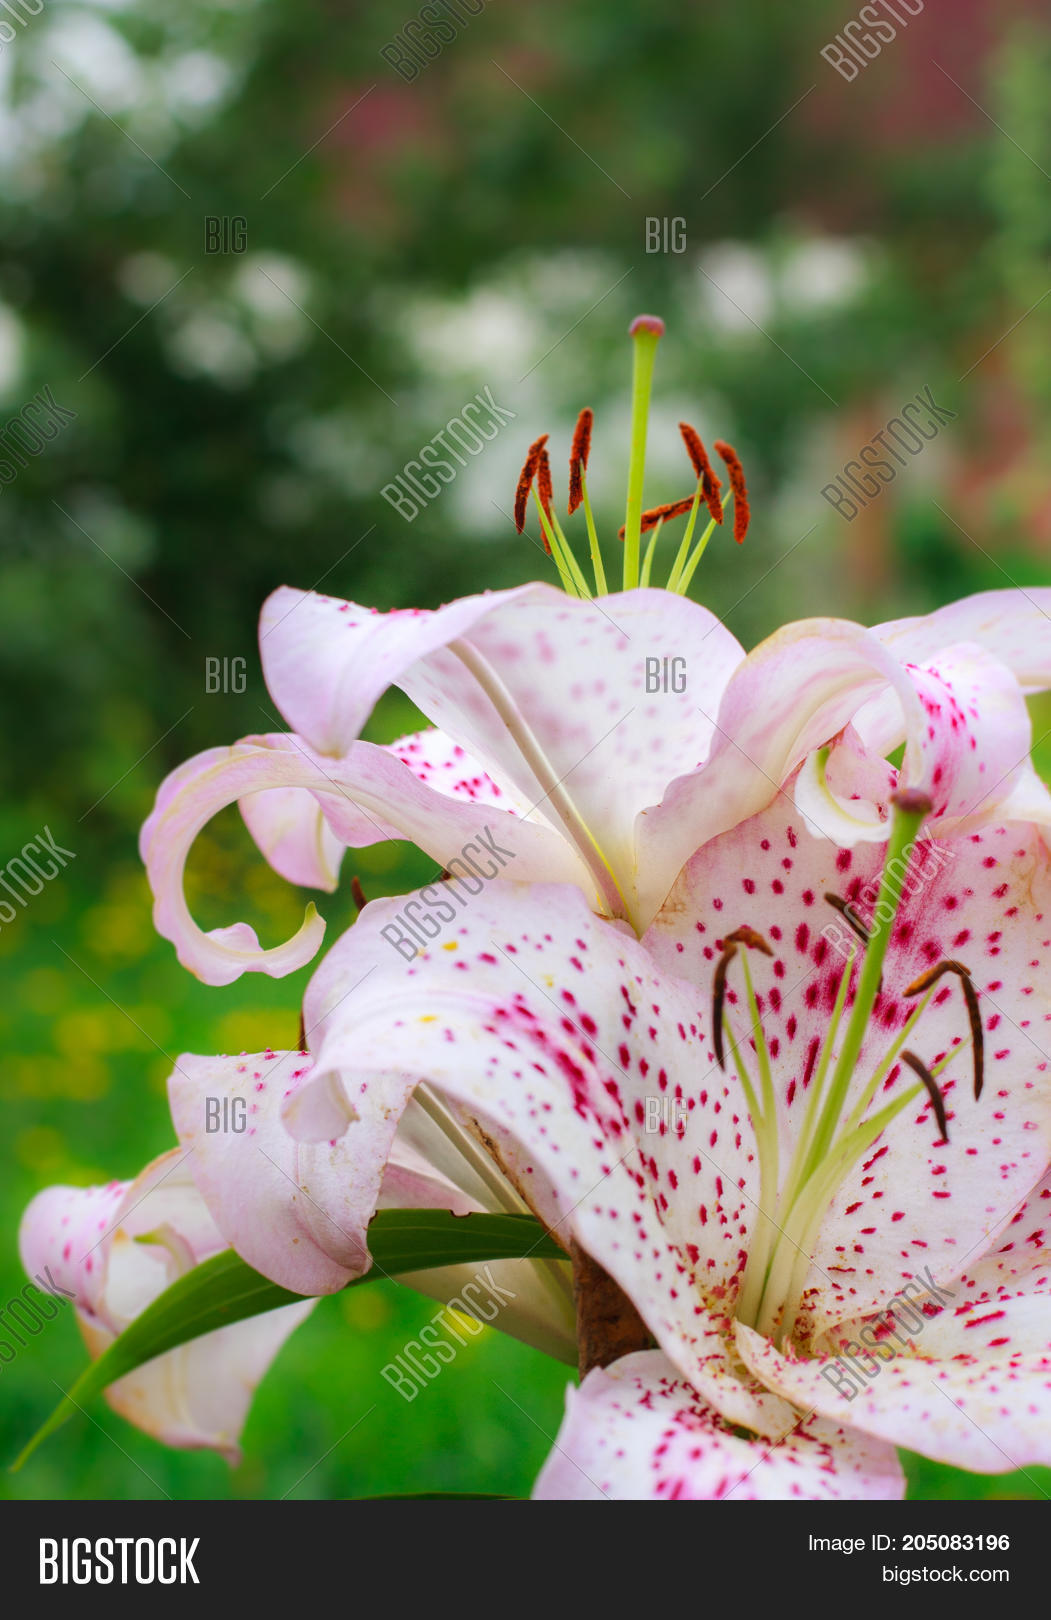 White Pink Lily Flower Image Photo Free Trial Bigstock